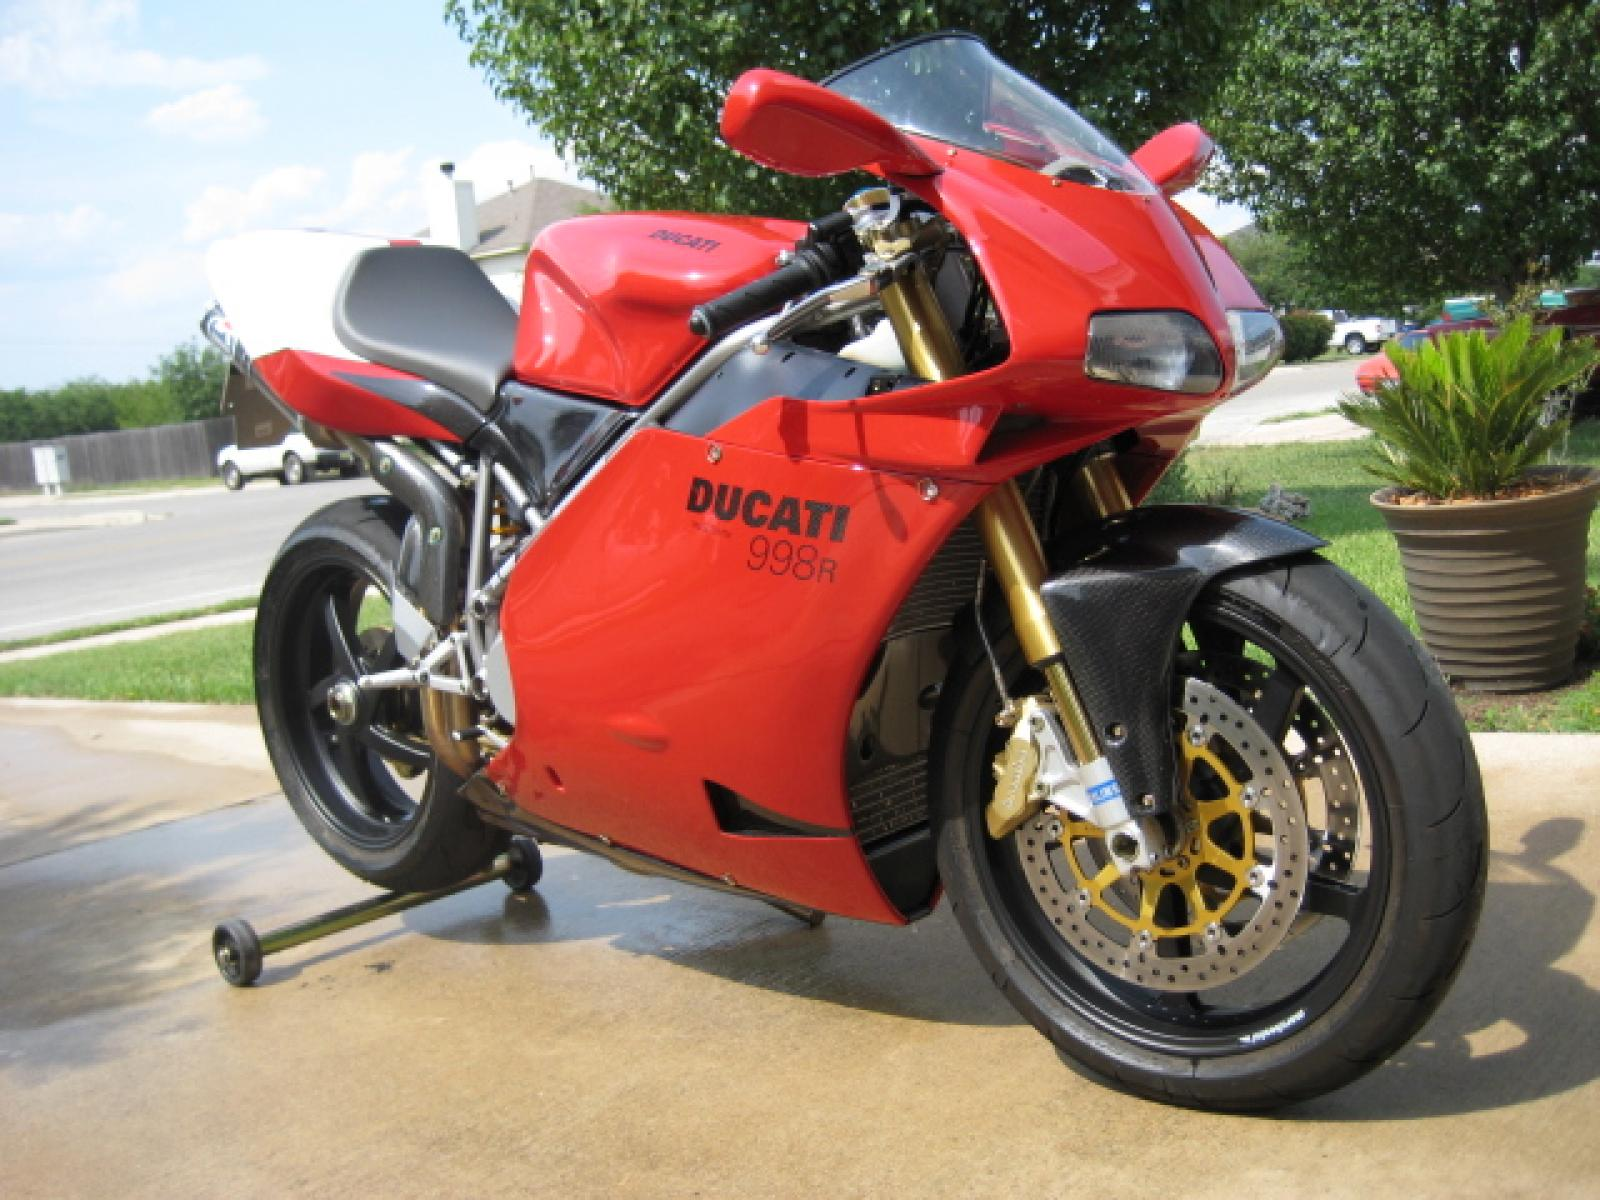 Ducati 998 R 2004 wallpapers #144846